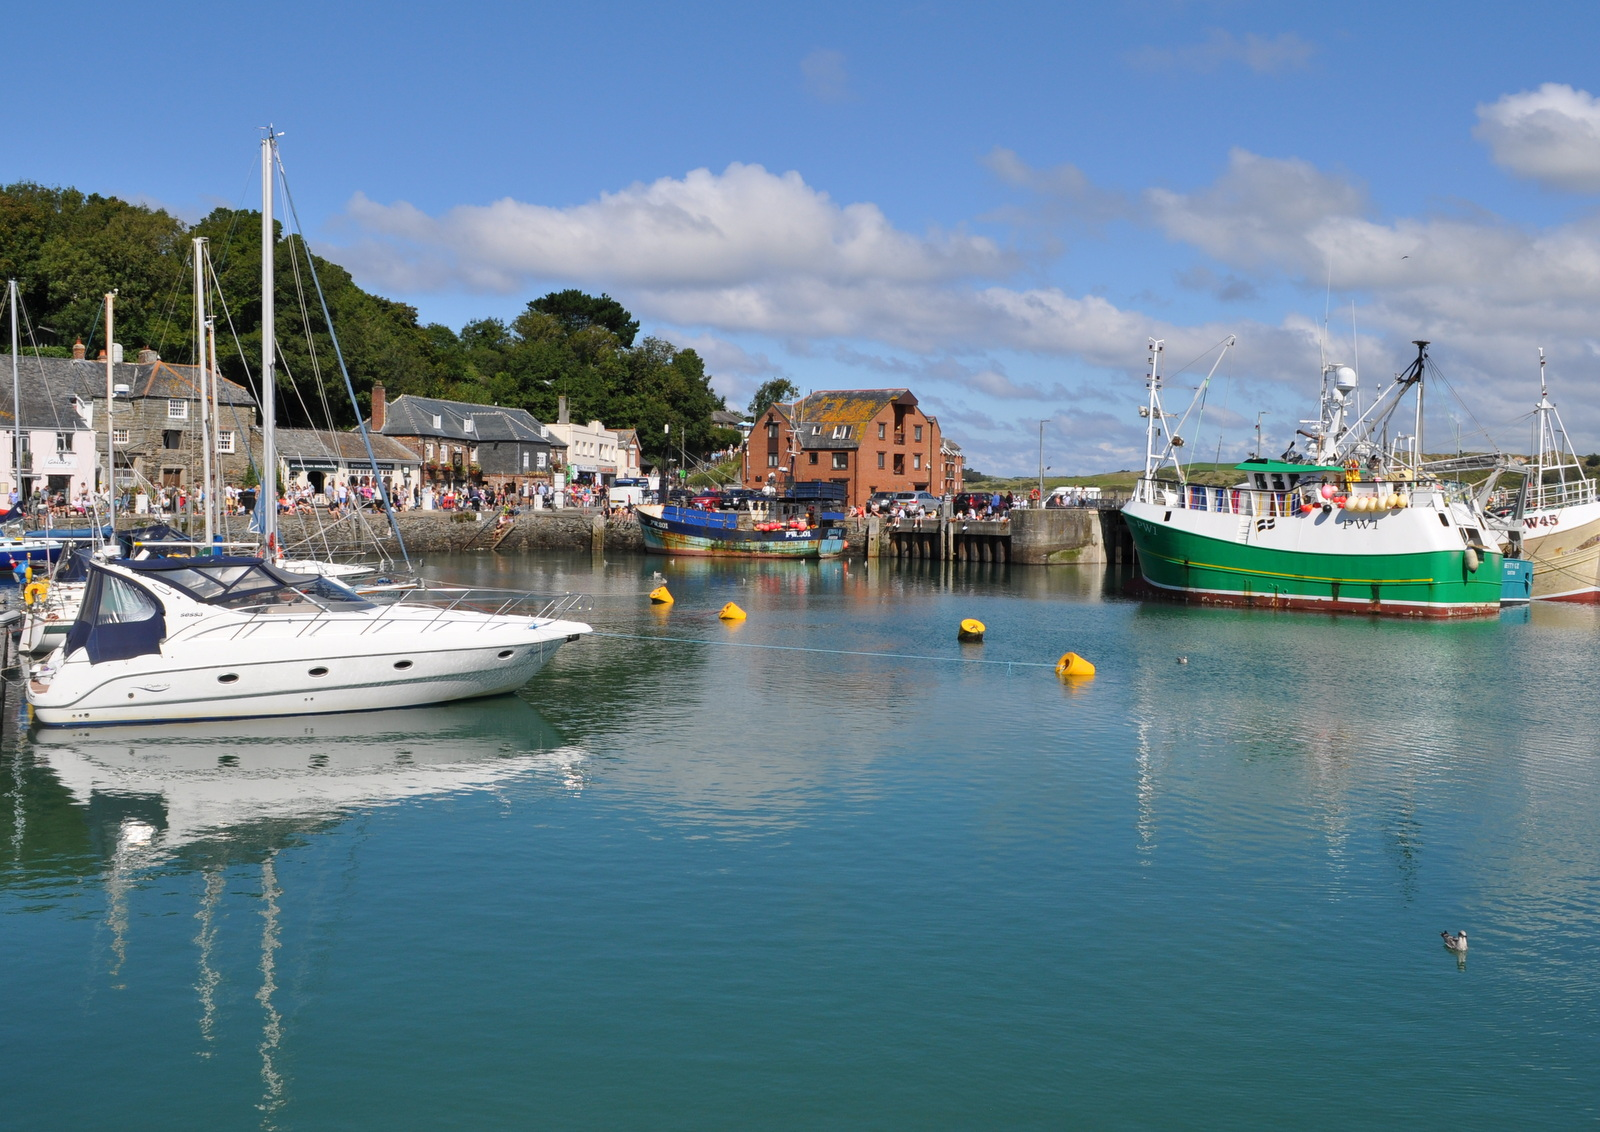 Padstow 173